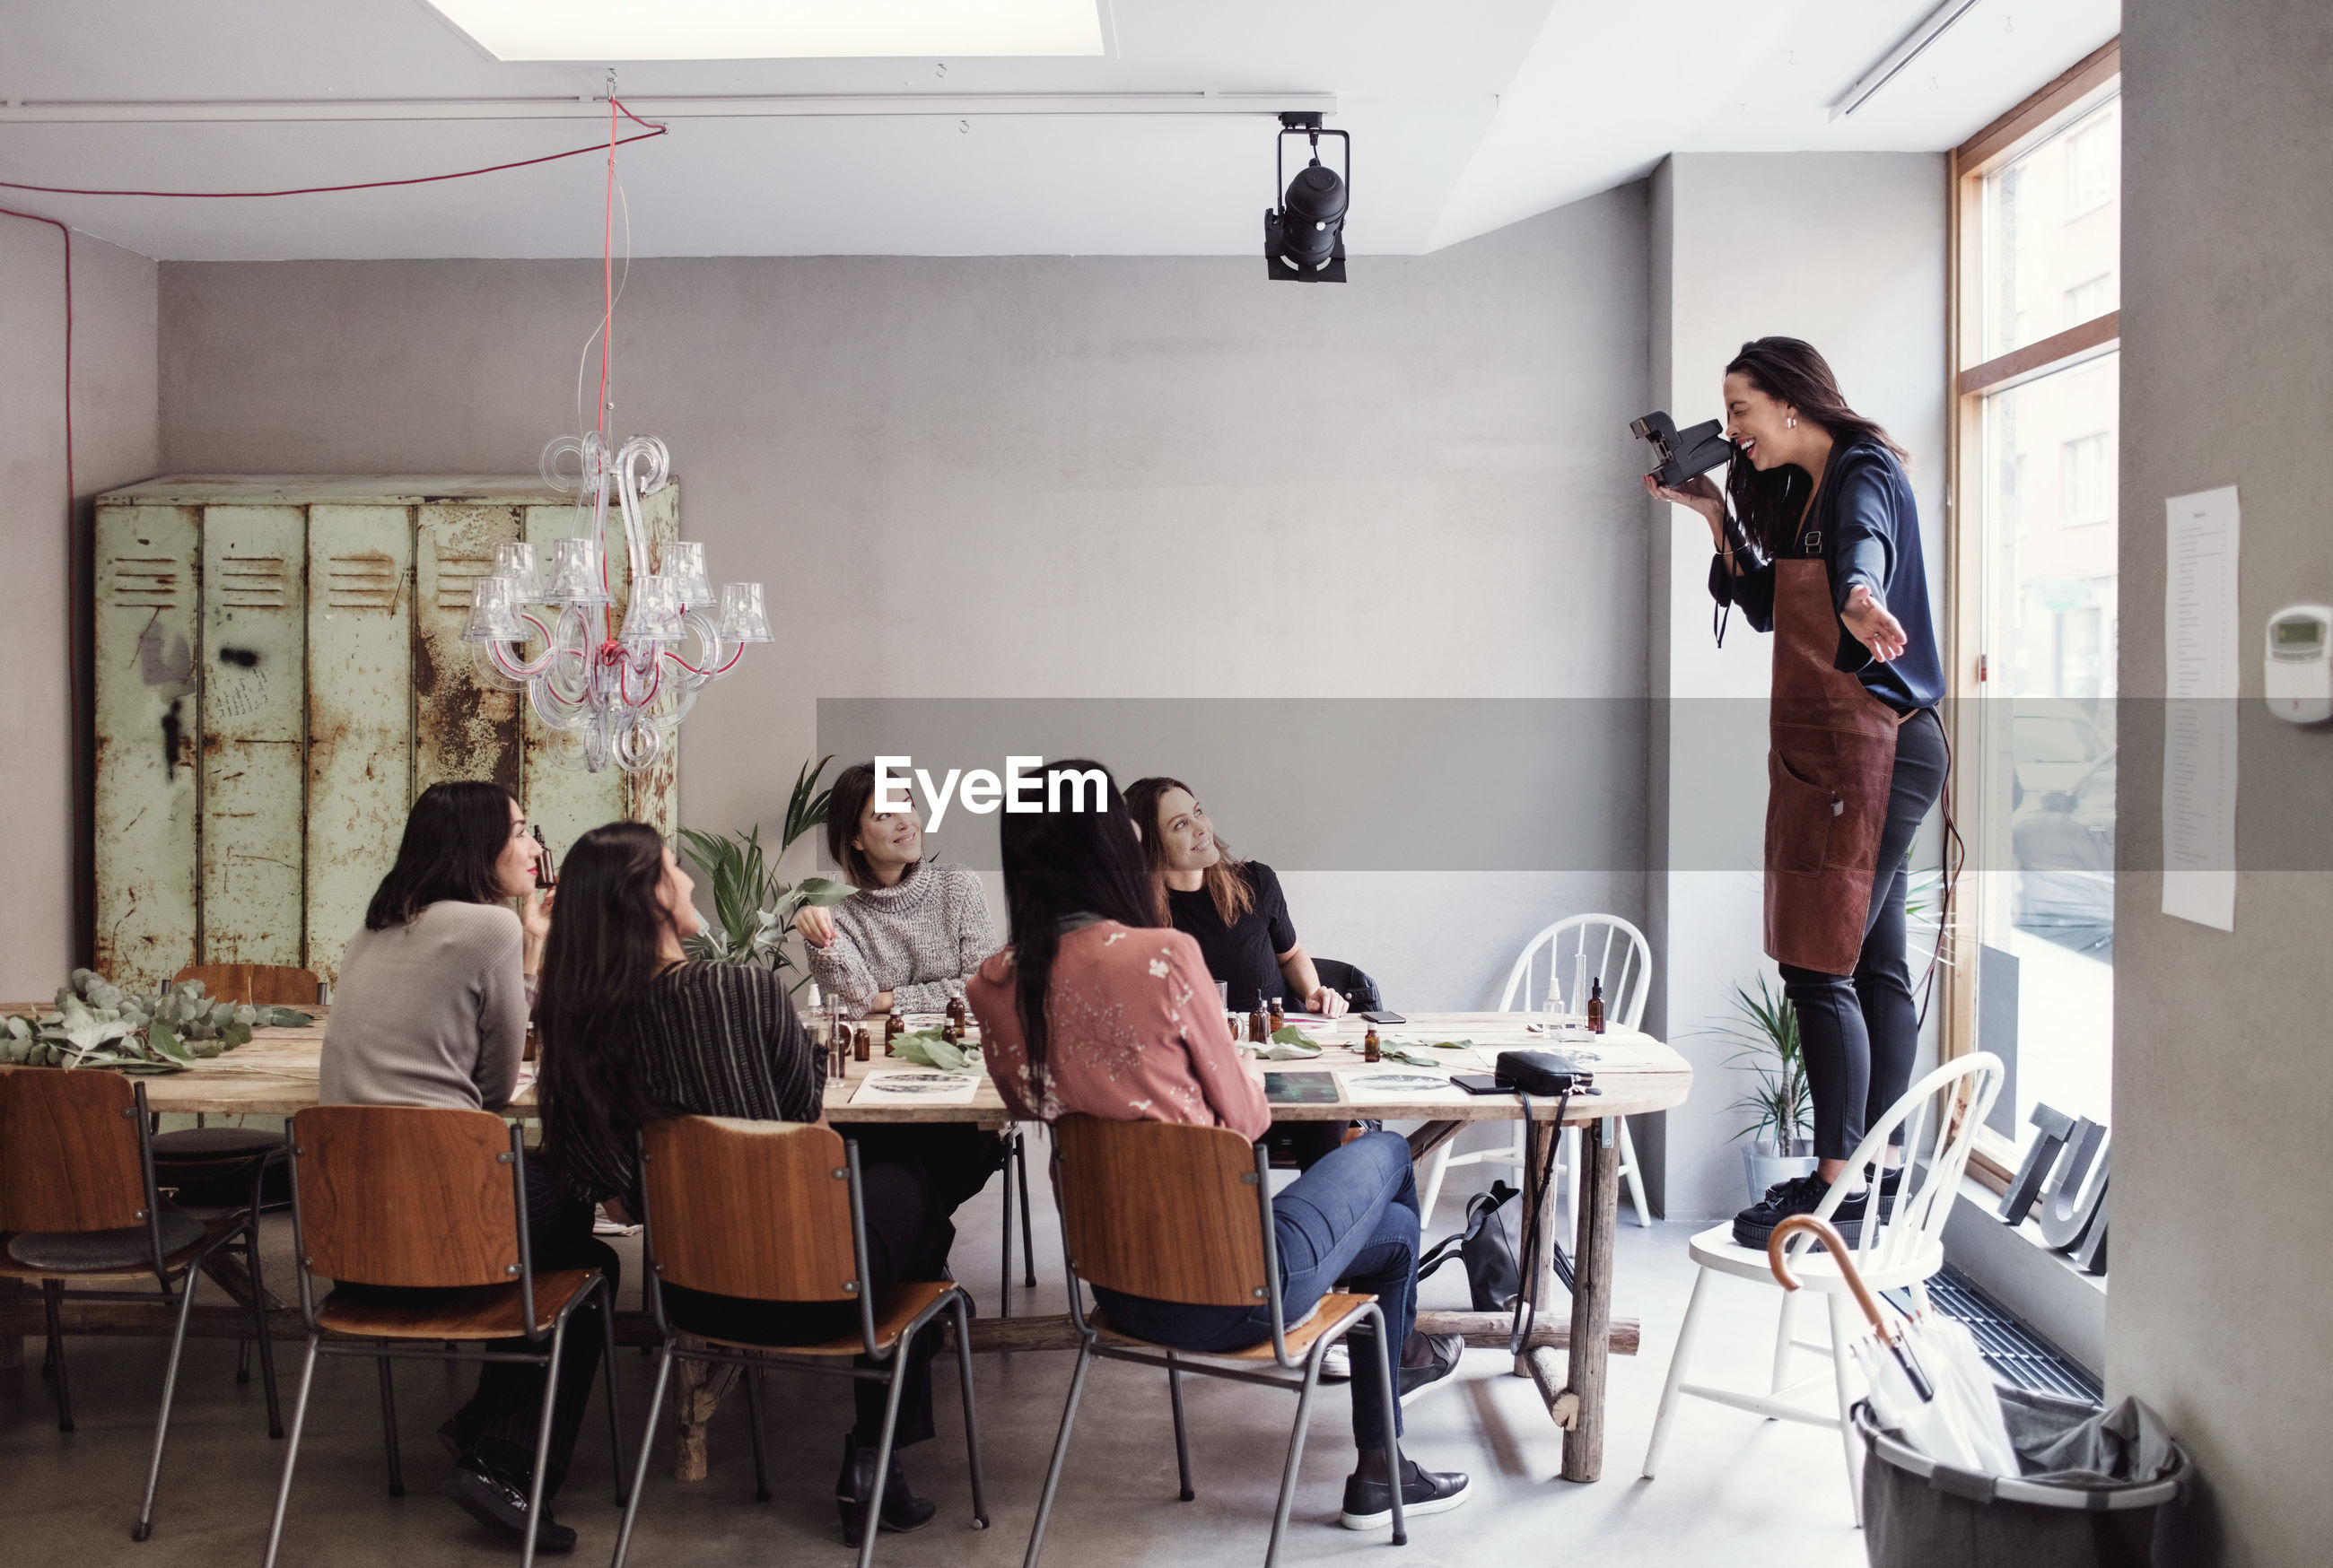 Cheerful woman standing on chair photographing female colleagues sitting at table in workshop